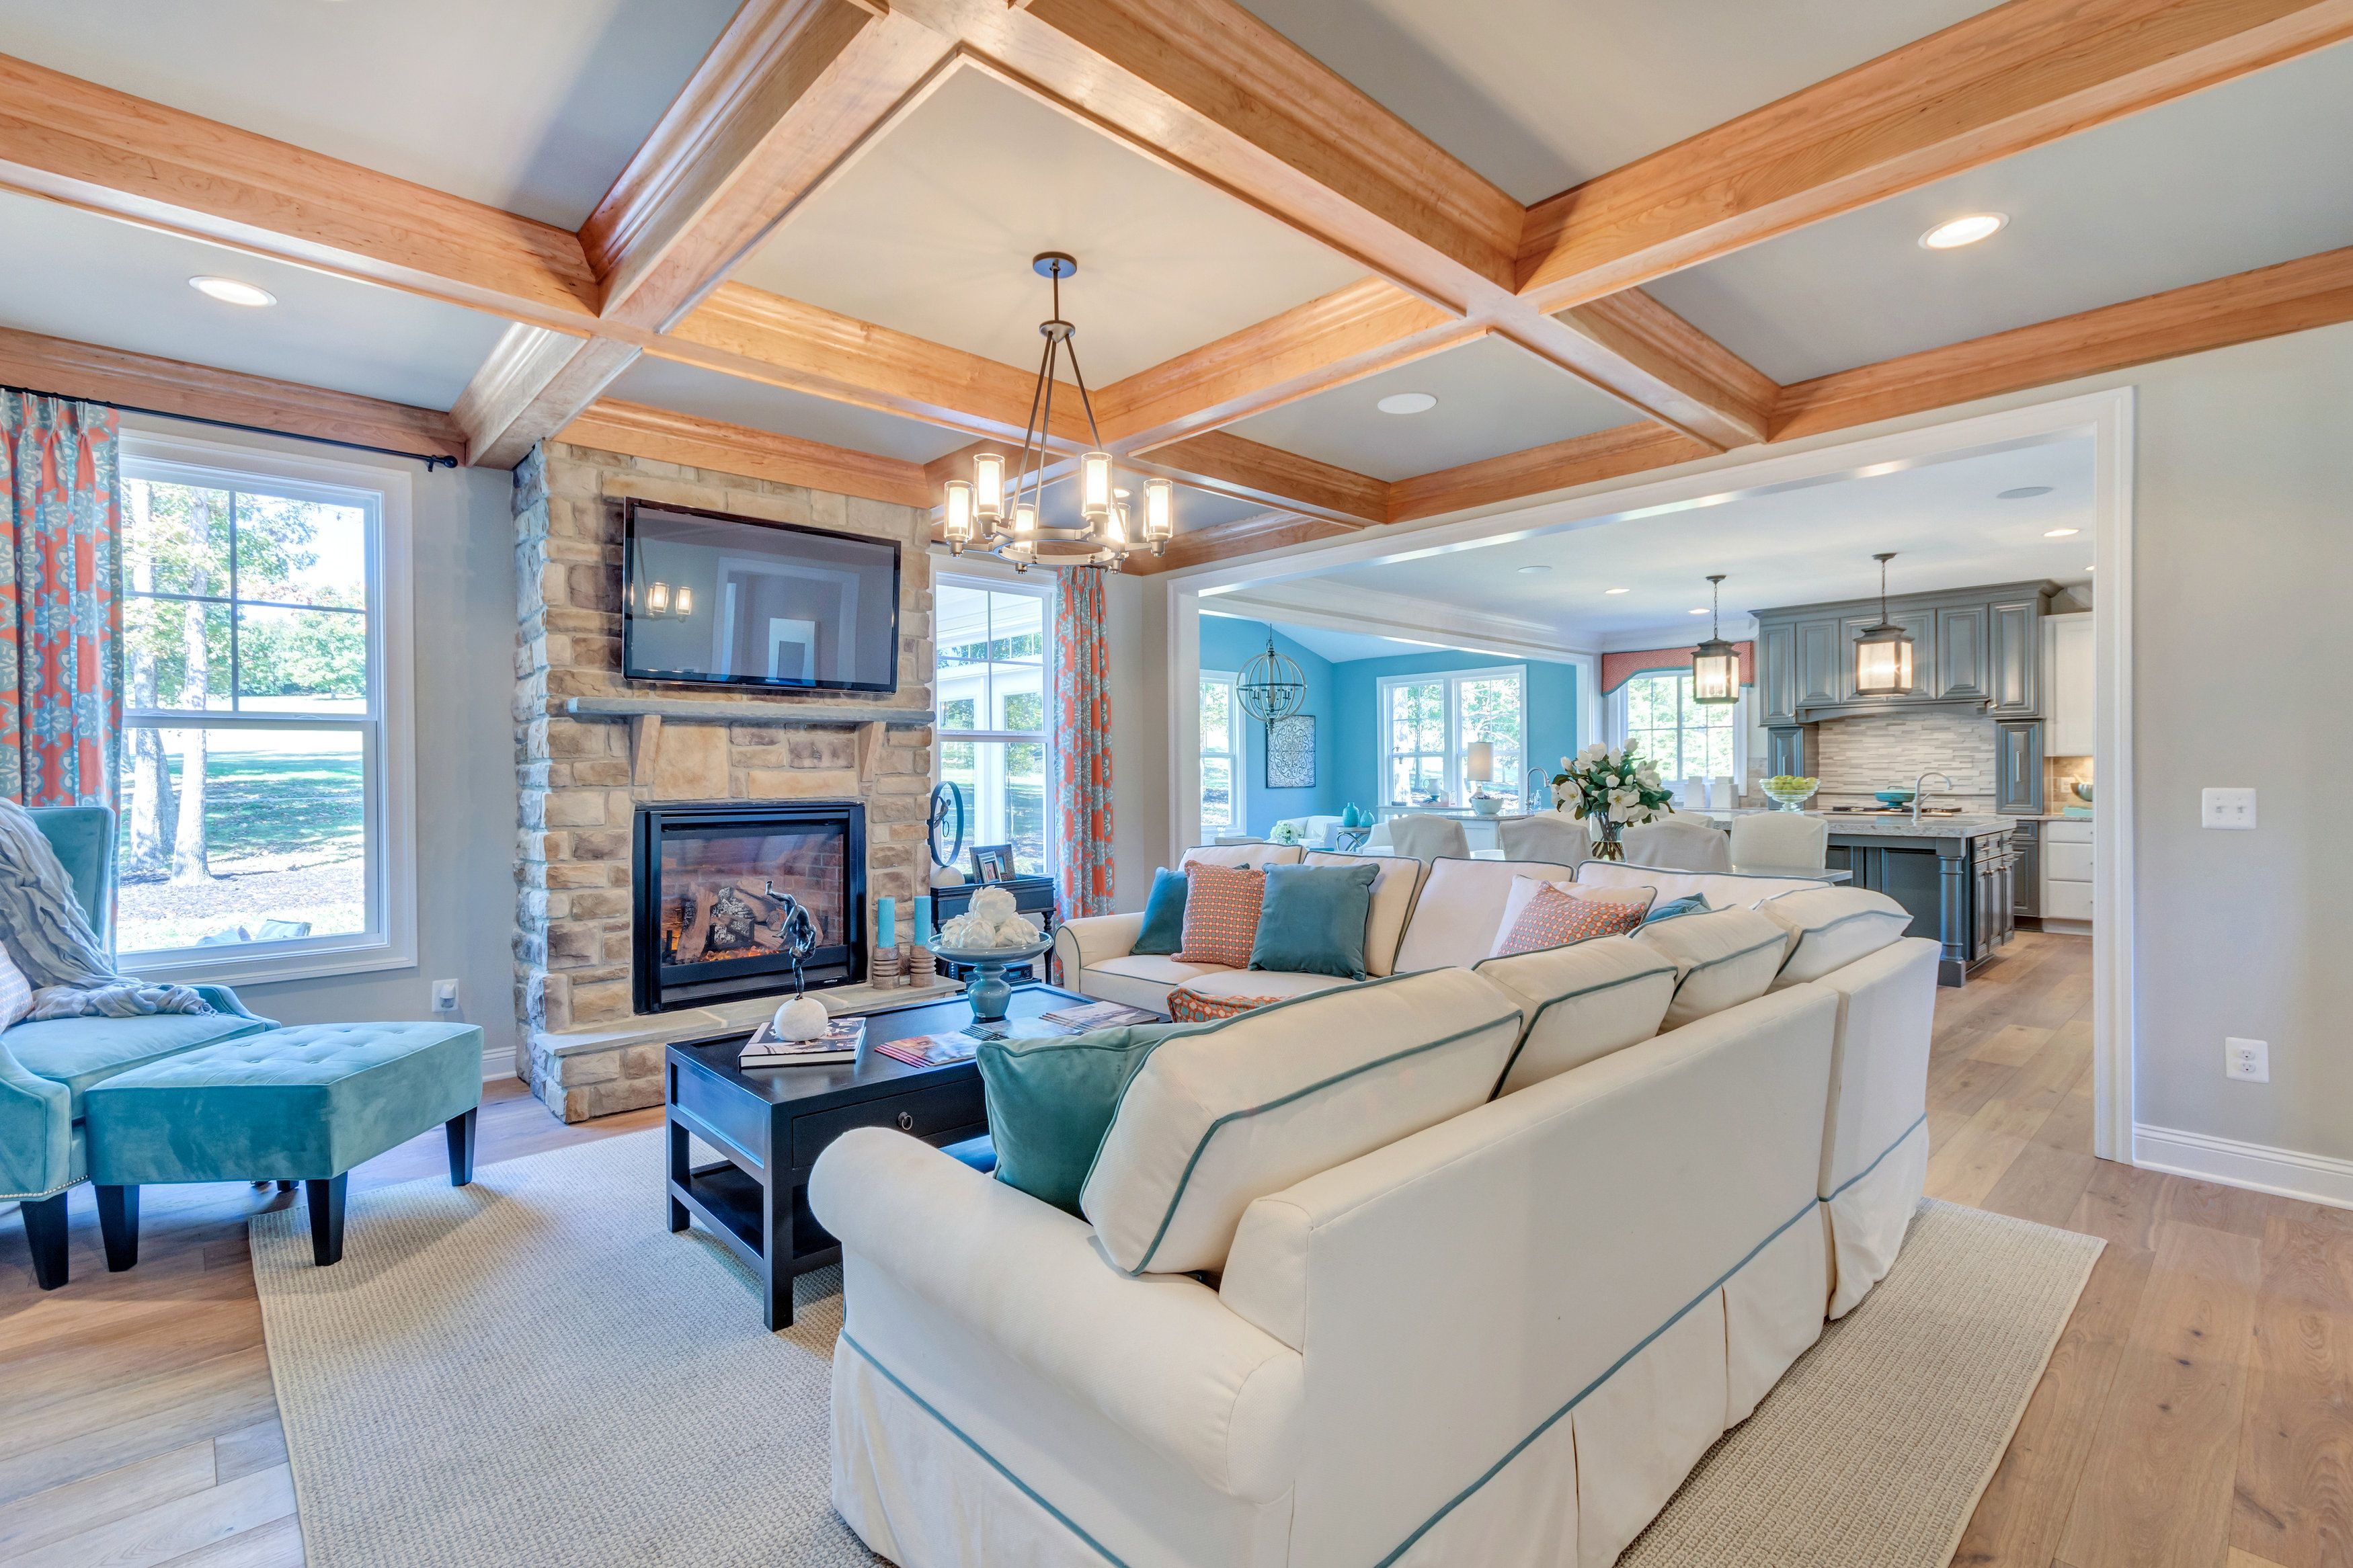 202 Best Stanley Martin Living Areas Images On Pinterest | Stanley Martin,  Single Family And Farming